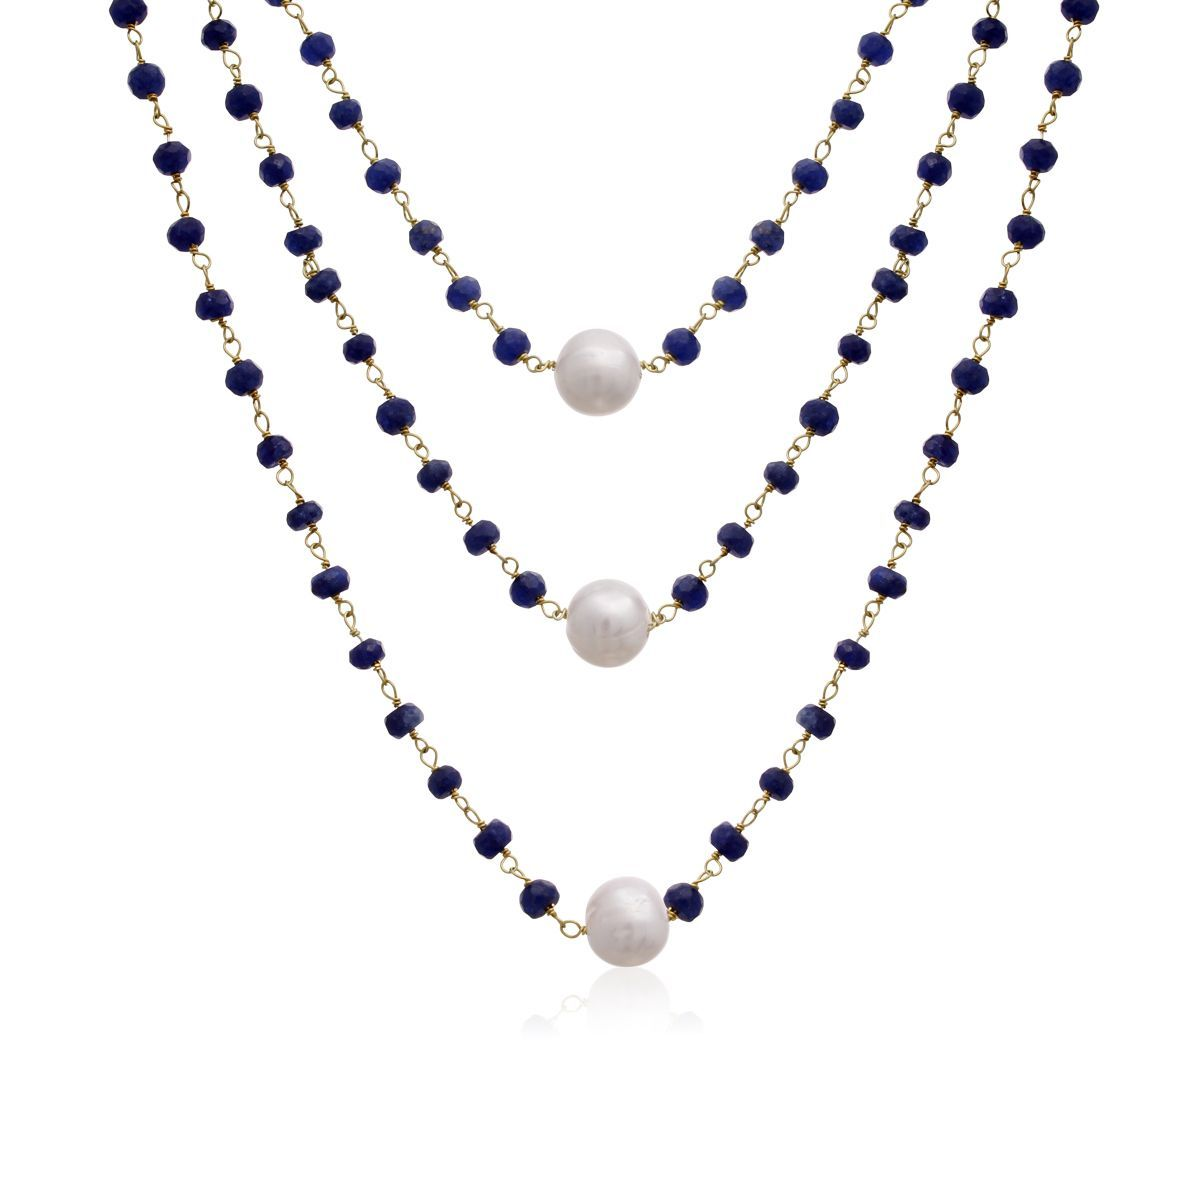 41 Carat Sapphire and Pearl Triple Strand Necklace In 14K Yellow Gold Over Sterling Silver, 20